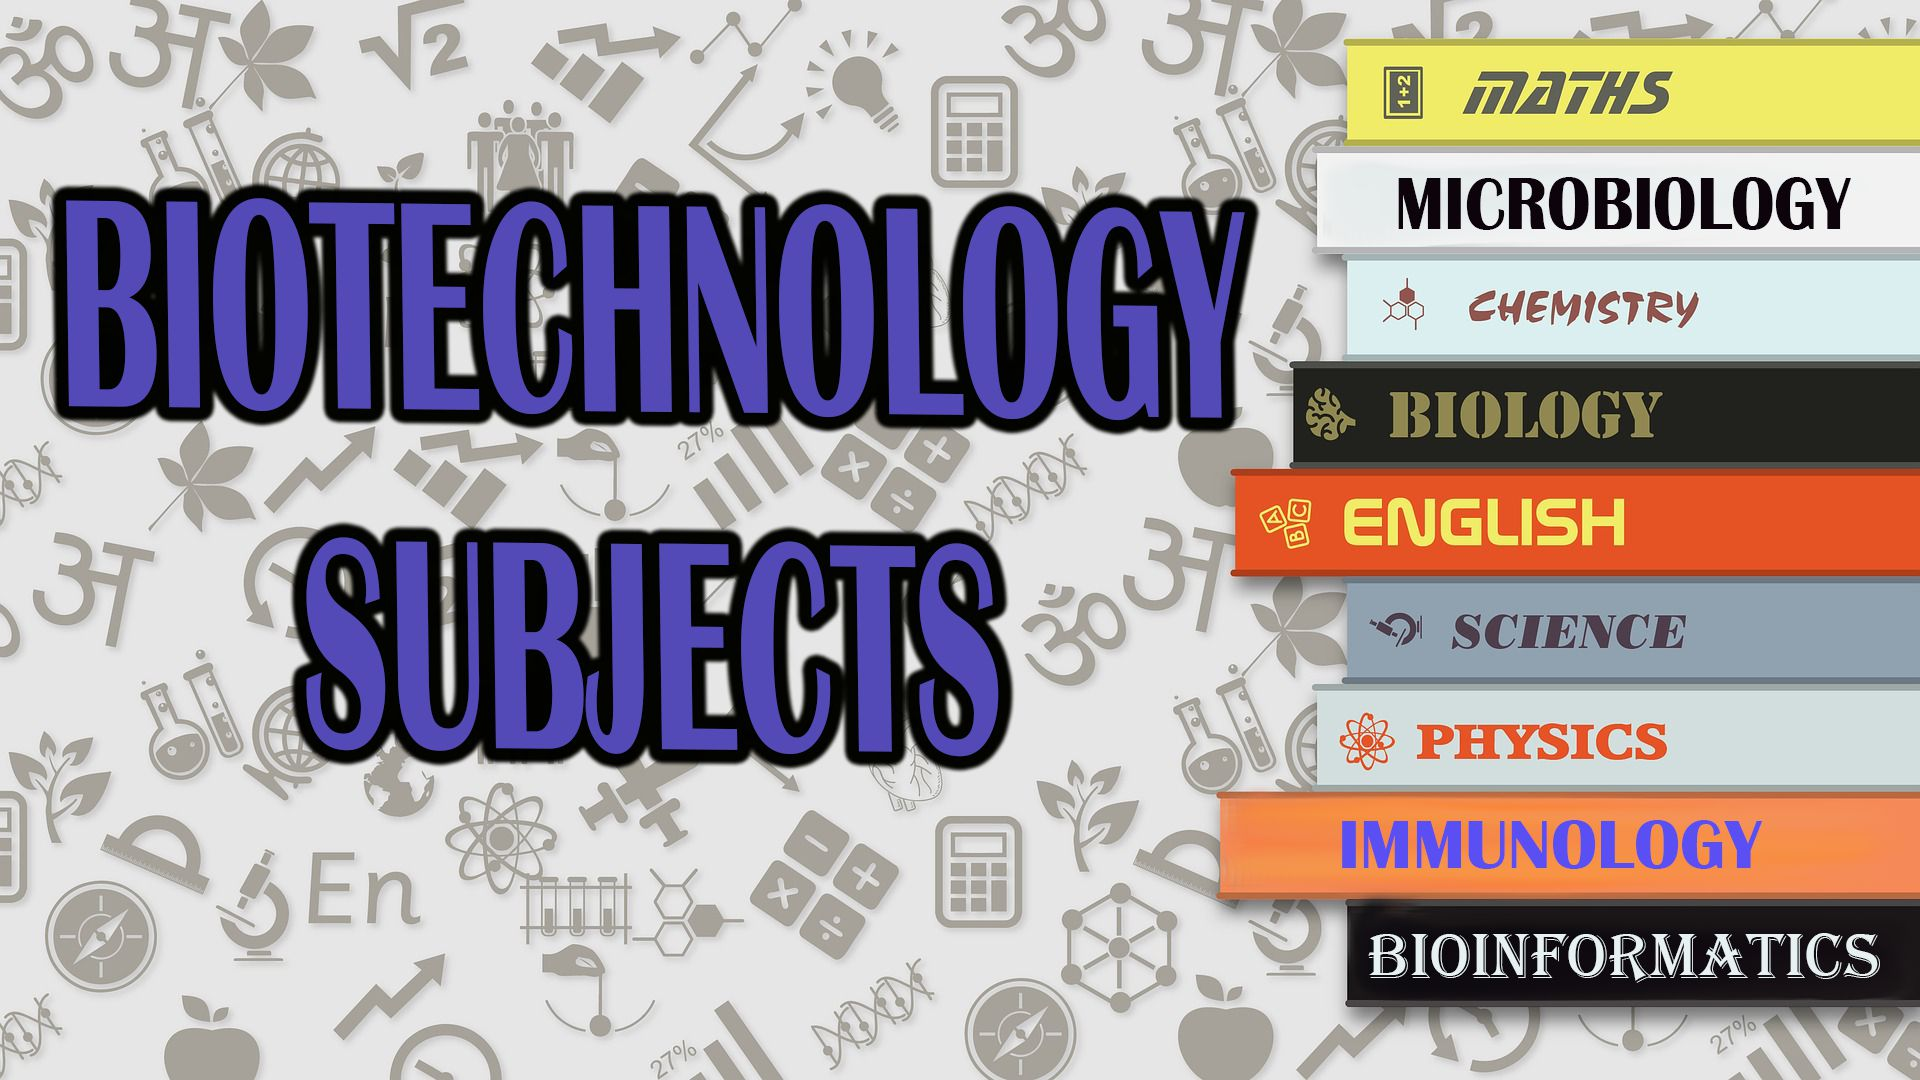 biotechnology subjects